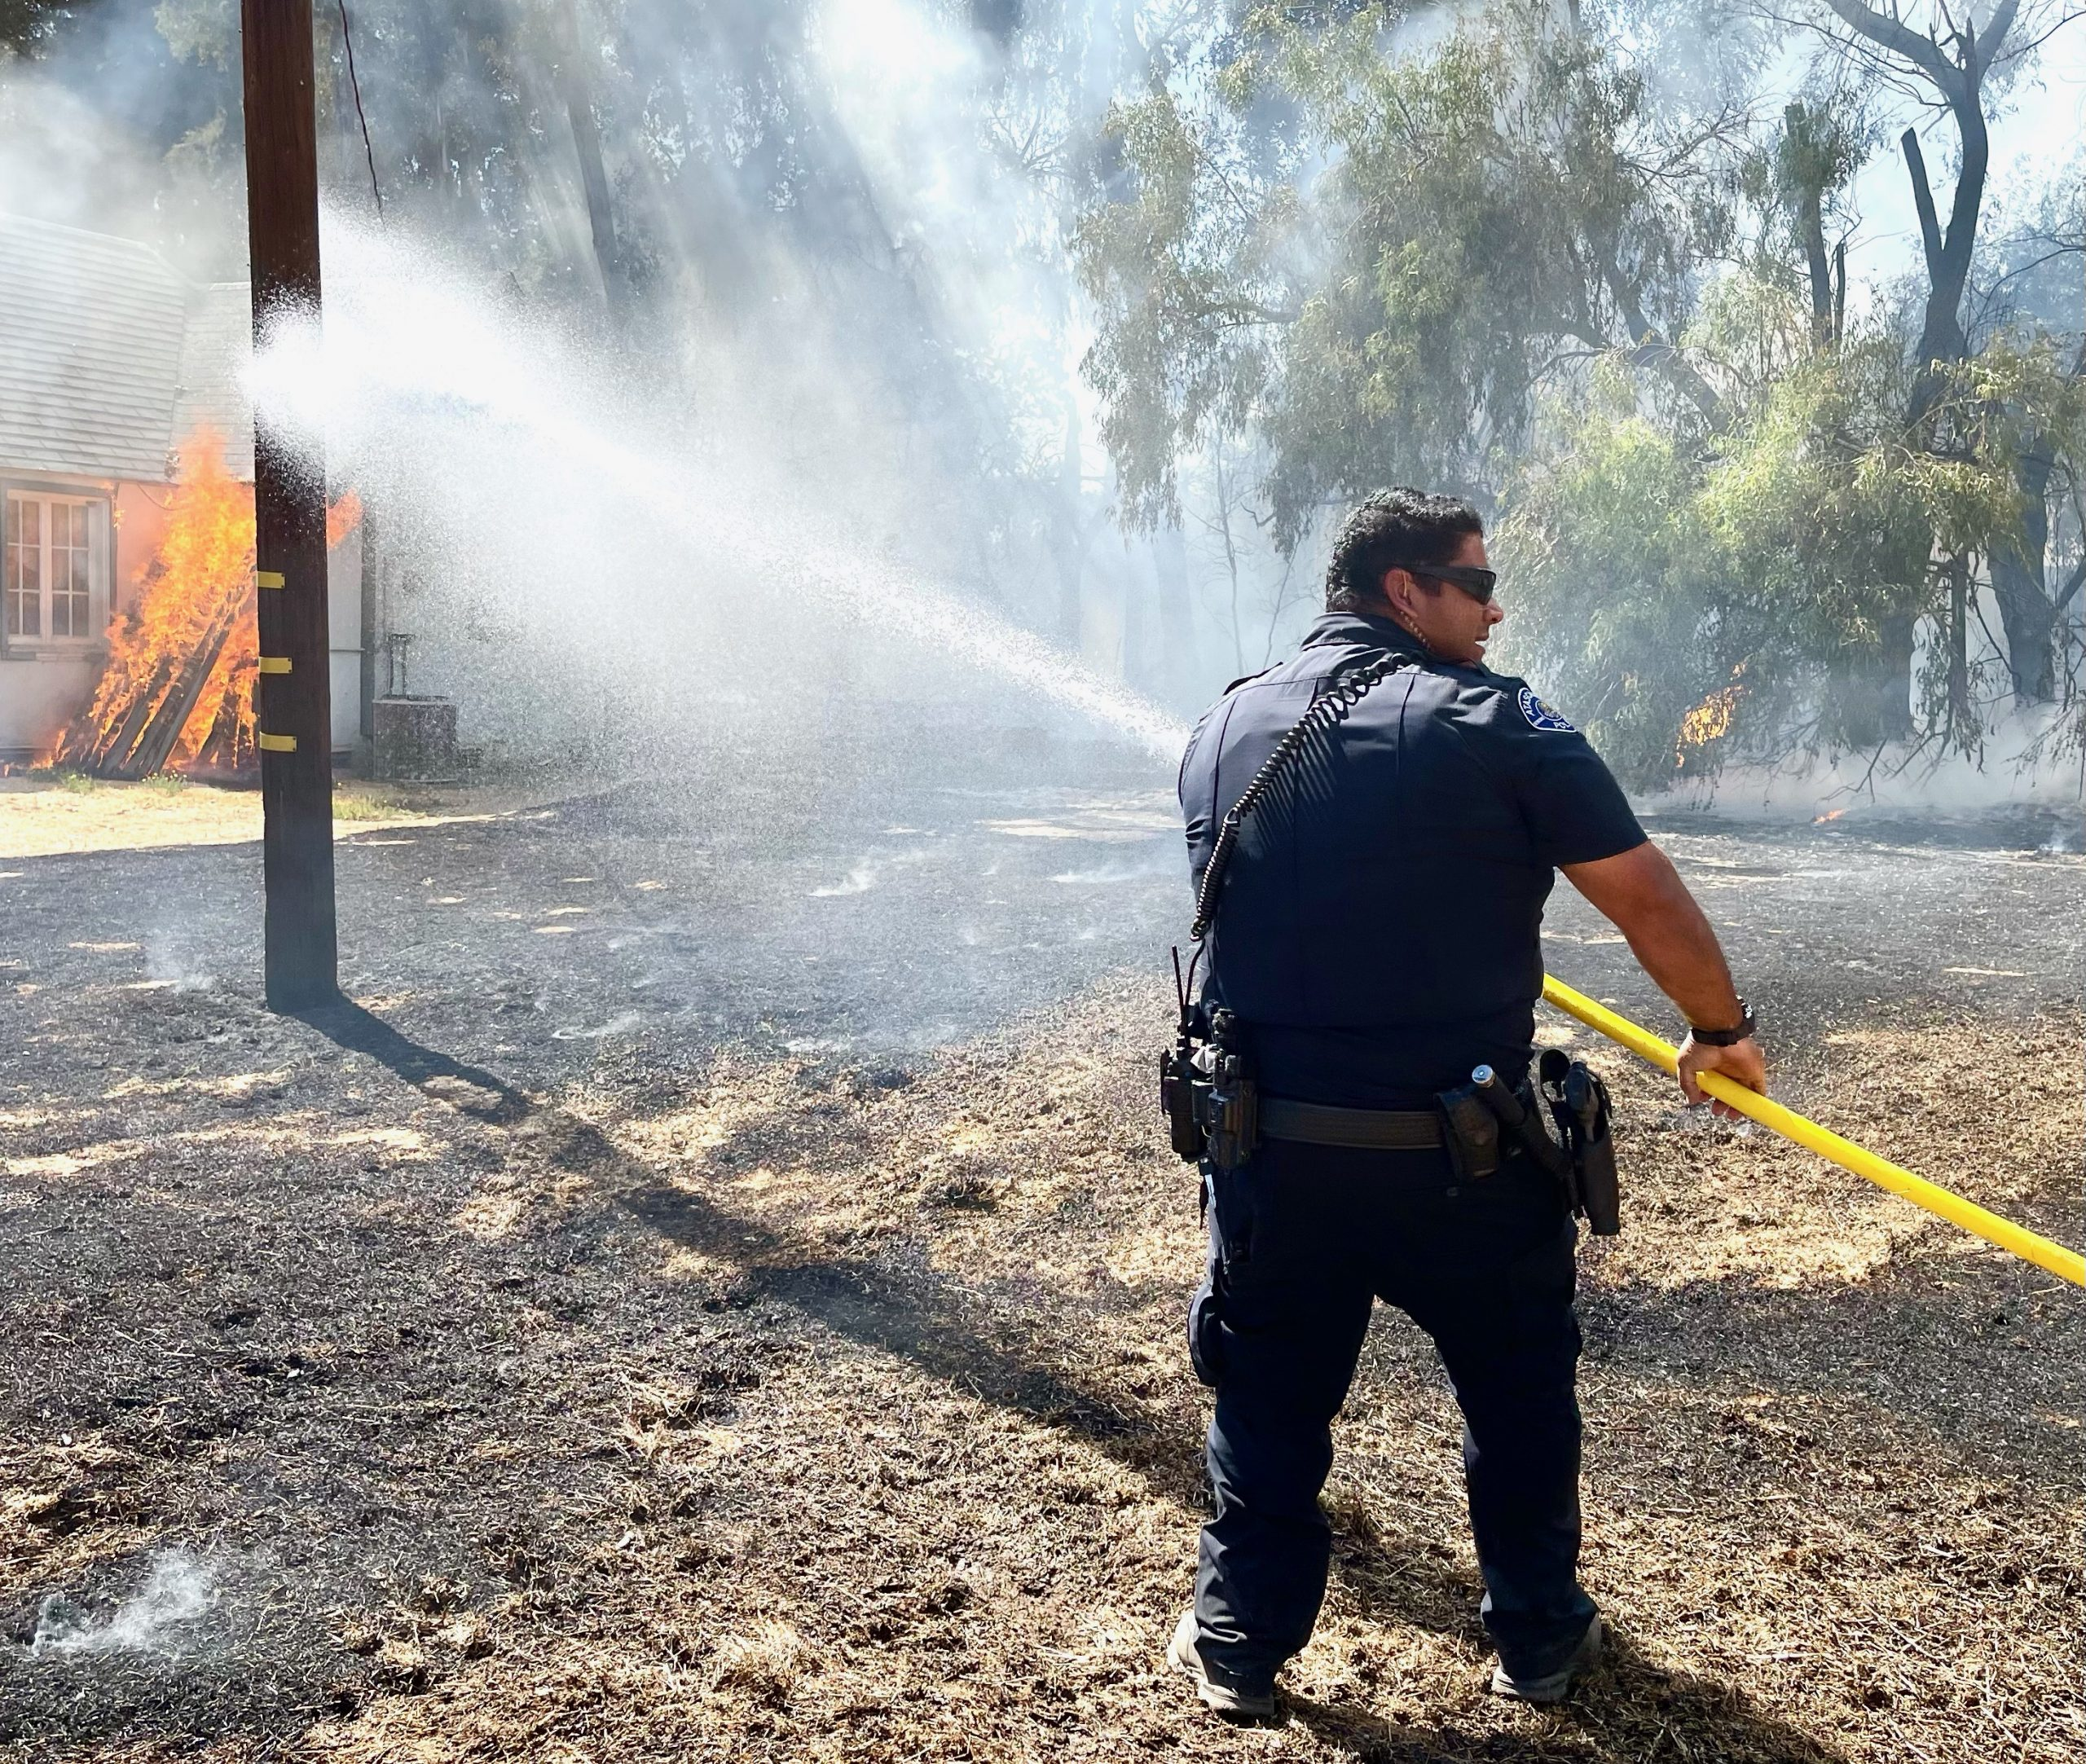 Fire damages Atascadero home, causes minor injuries